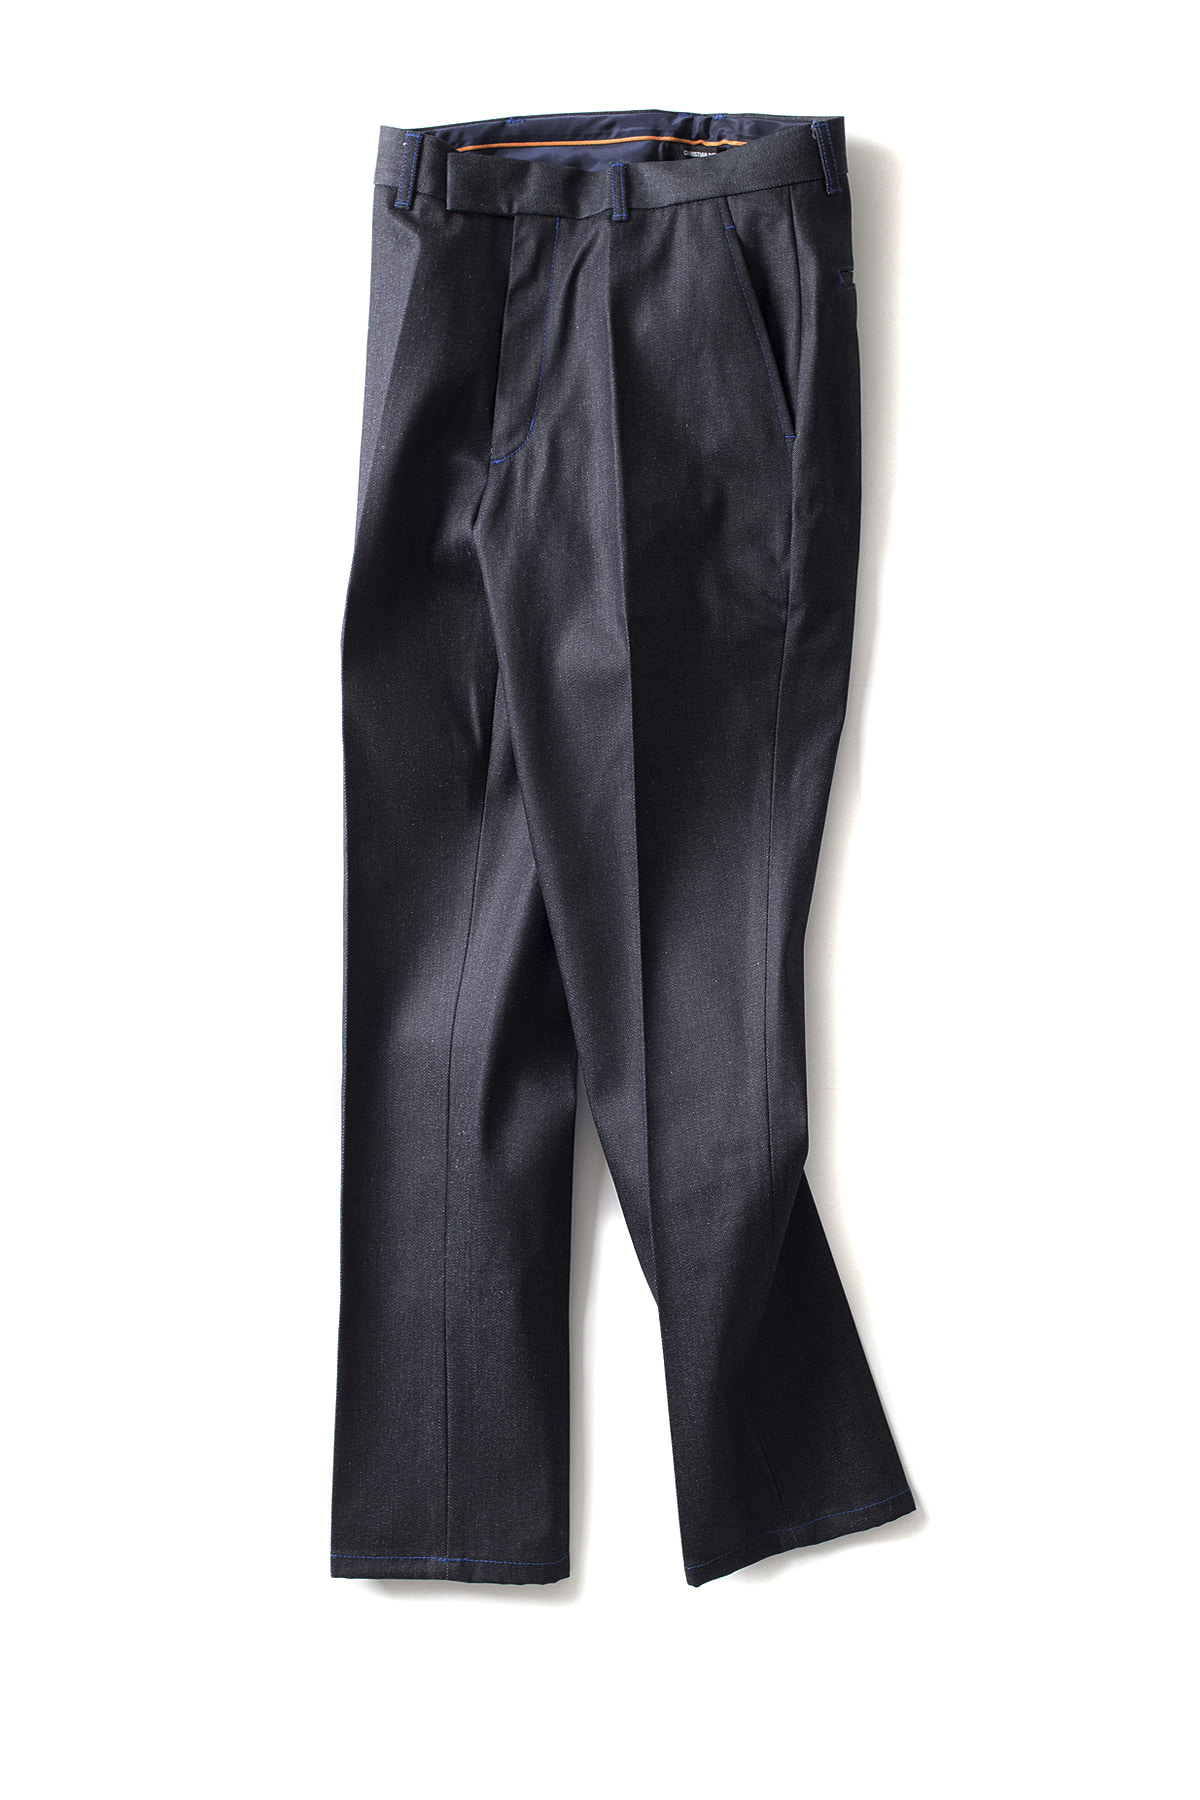 Christian Dada : Coating Denim Trousers (Indigo)